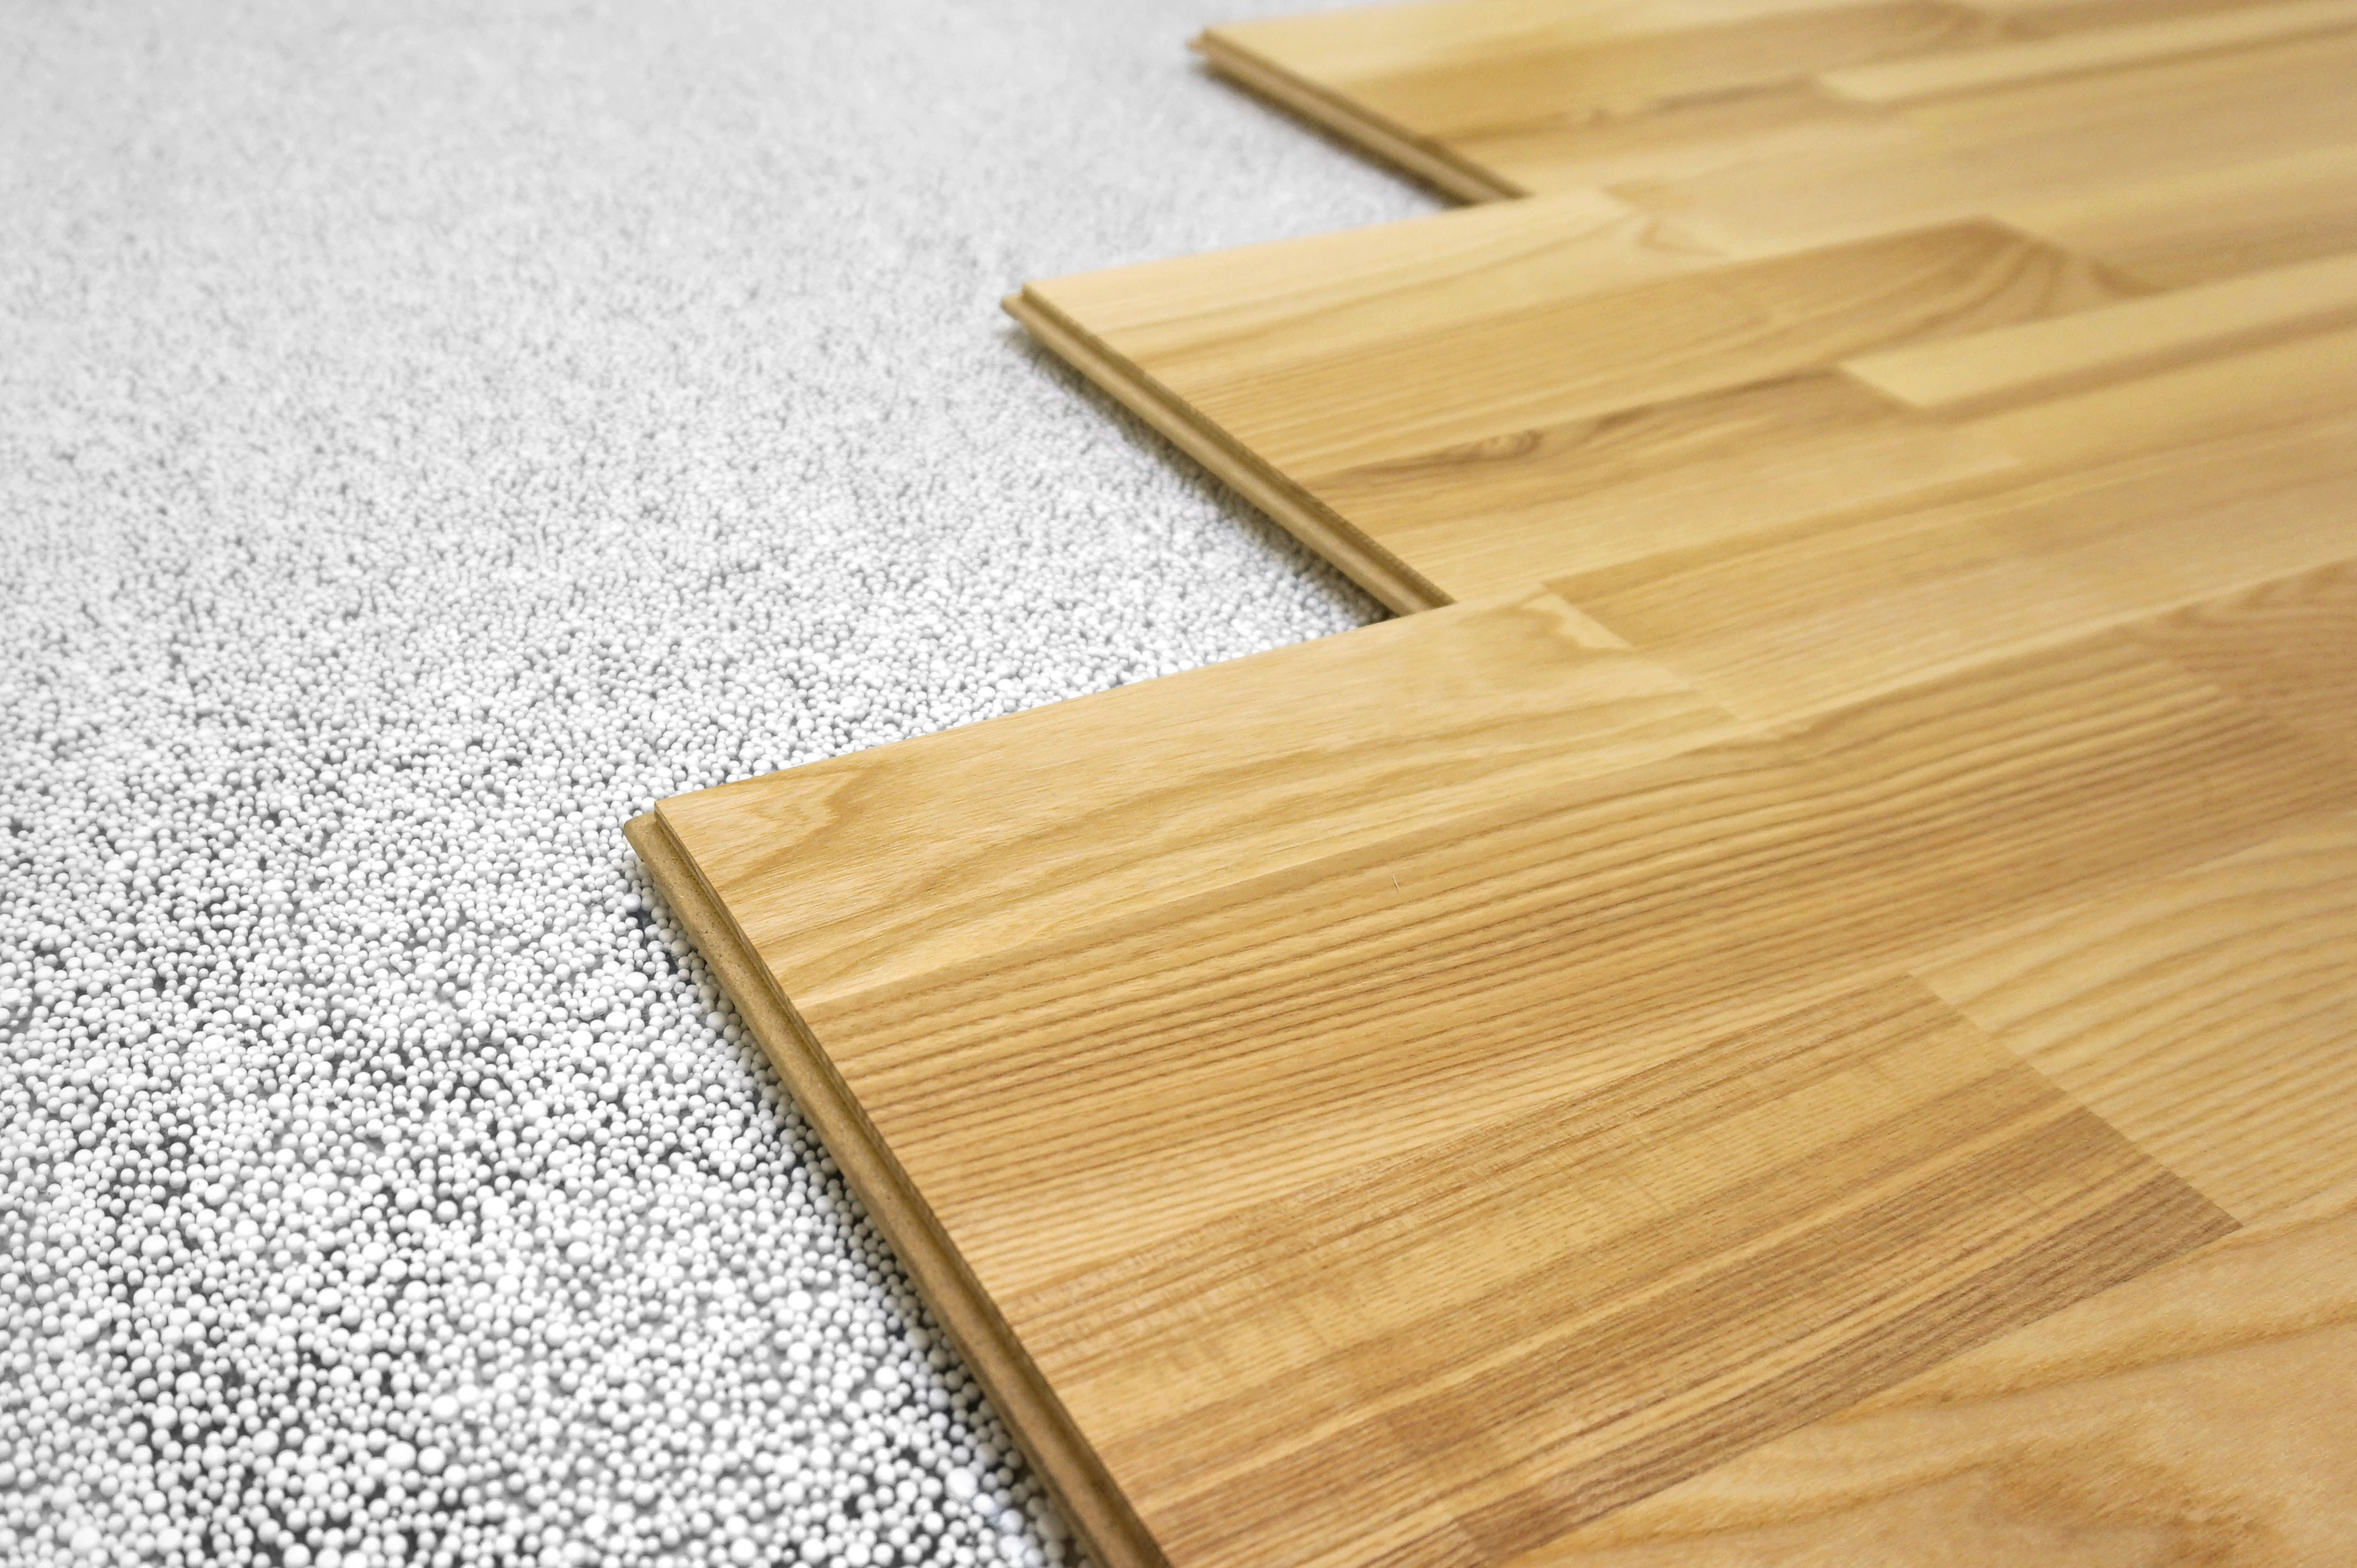 hardwood flooring warehouse toronto of what does it cost to install laminate flooring angies list regarding wood lam